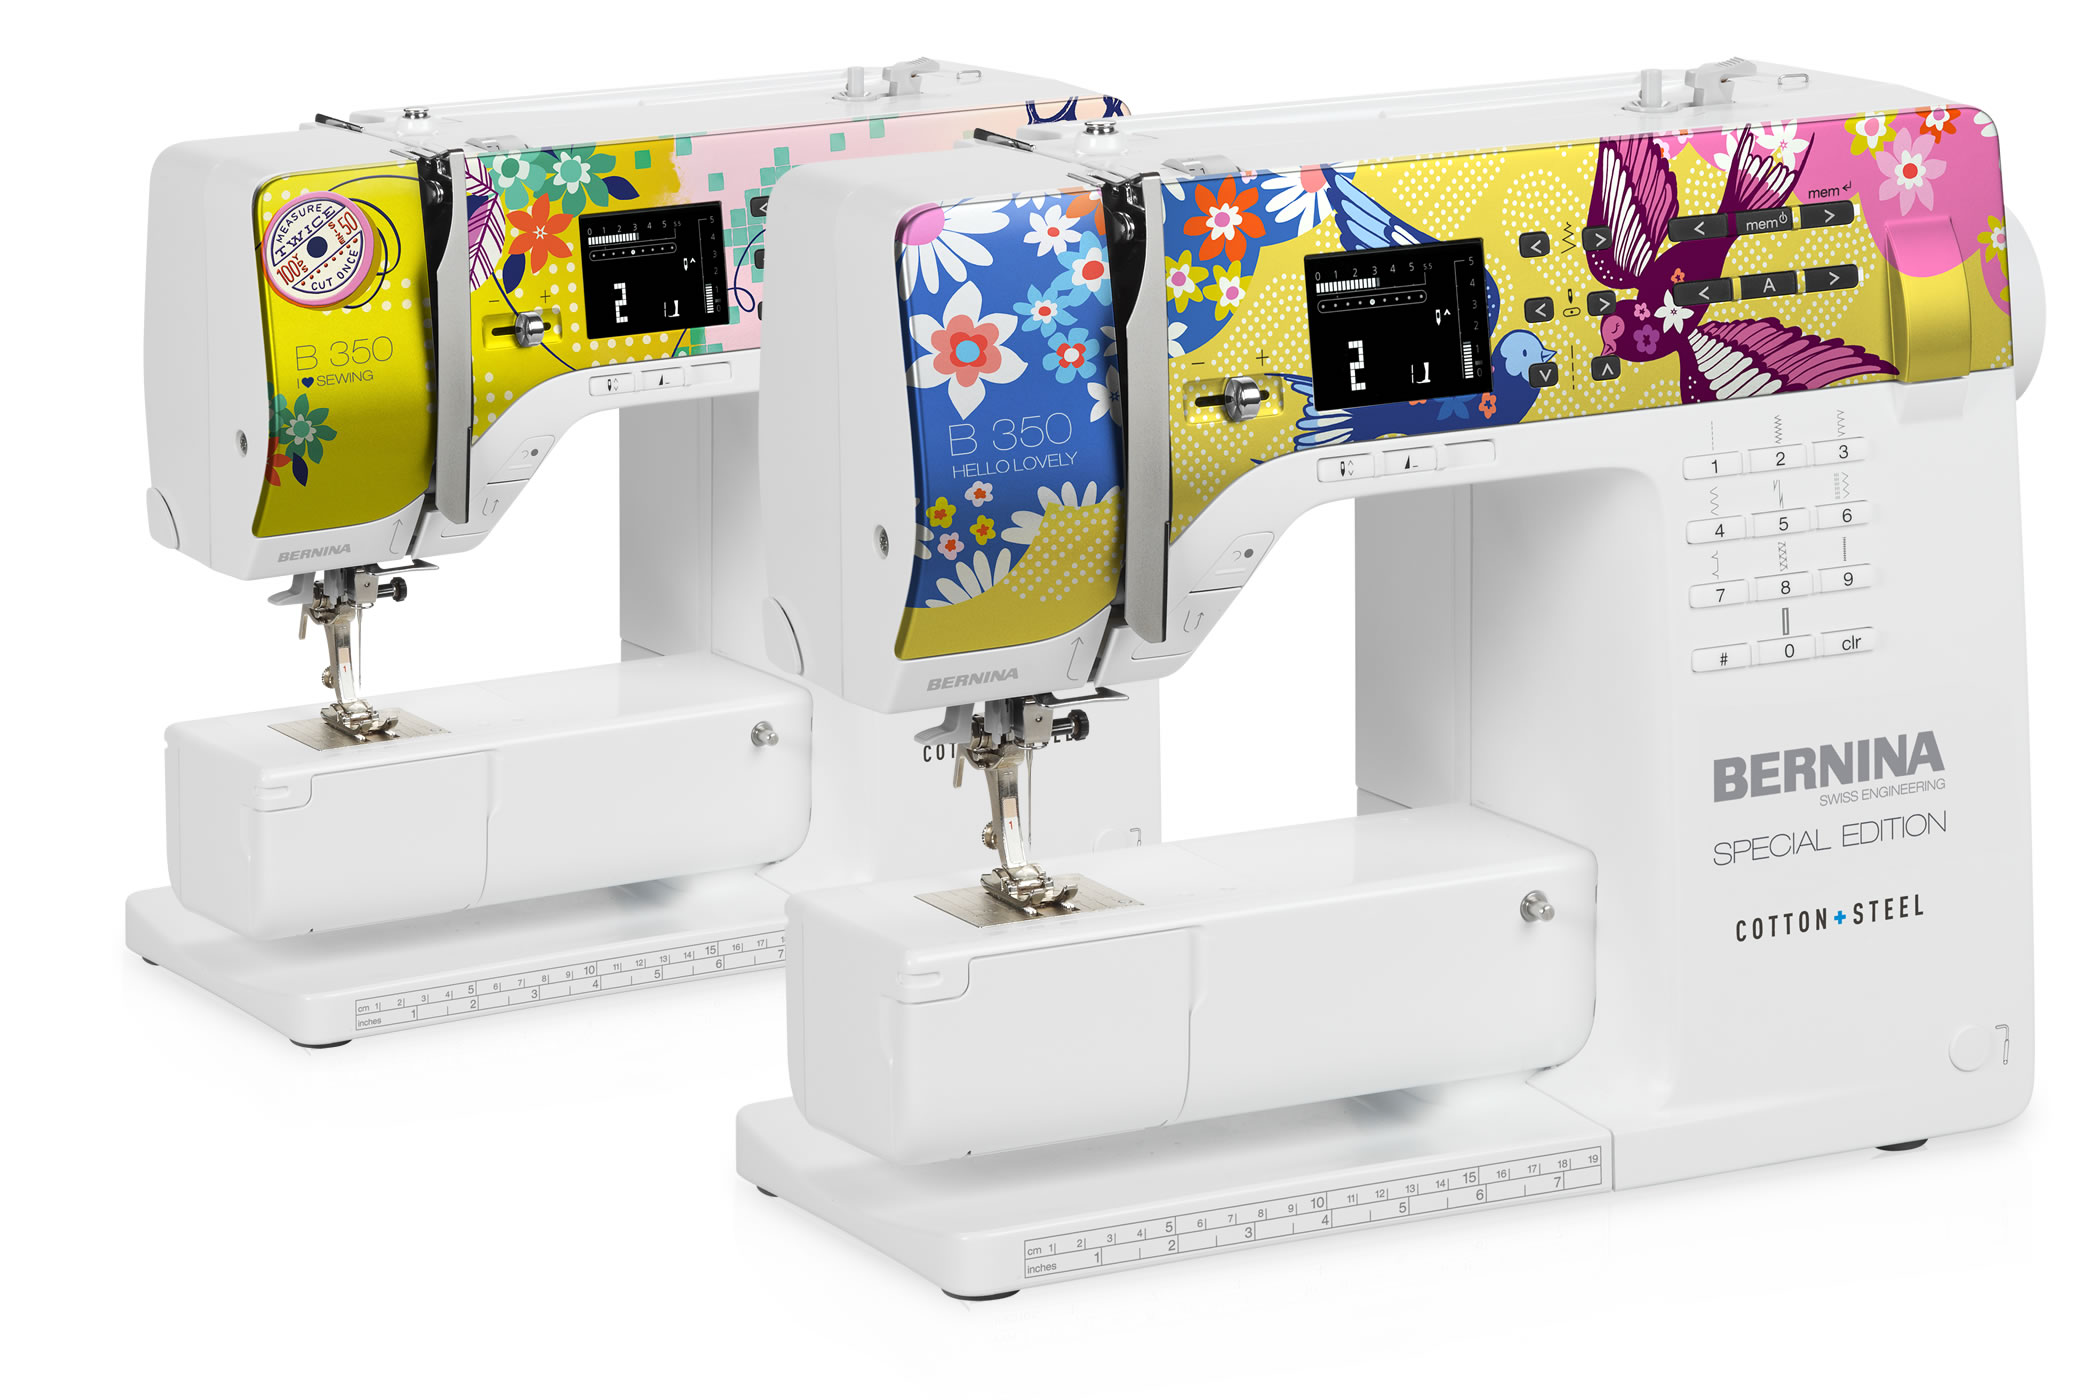 BERNINA 350 SE COTTON+STEEL